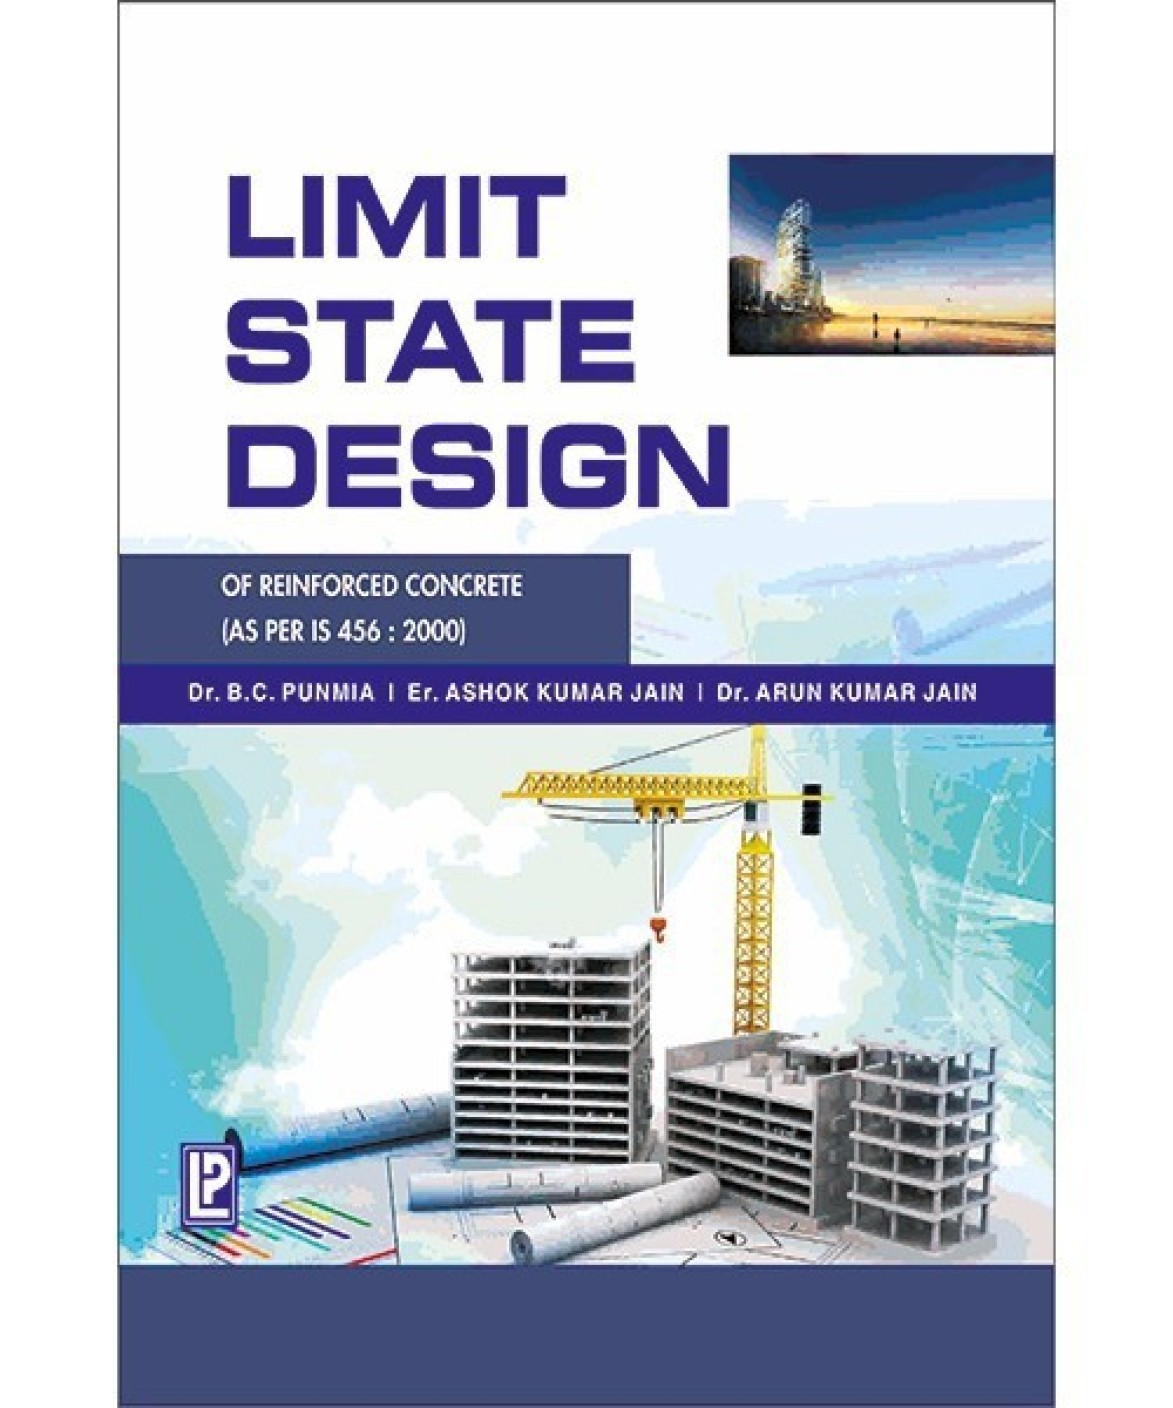 limit state design in australia Limit state design: fastening to concrete paper presented at concrete 99 by rod mackay-sim general manager reid construction systems pty ltd this paper reviews the various limit states which determine the performance of fastenings in.